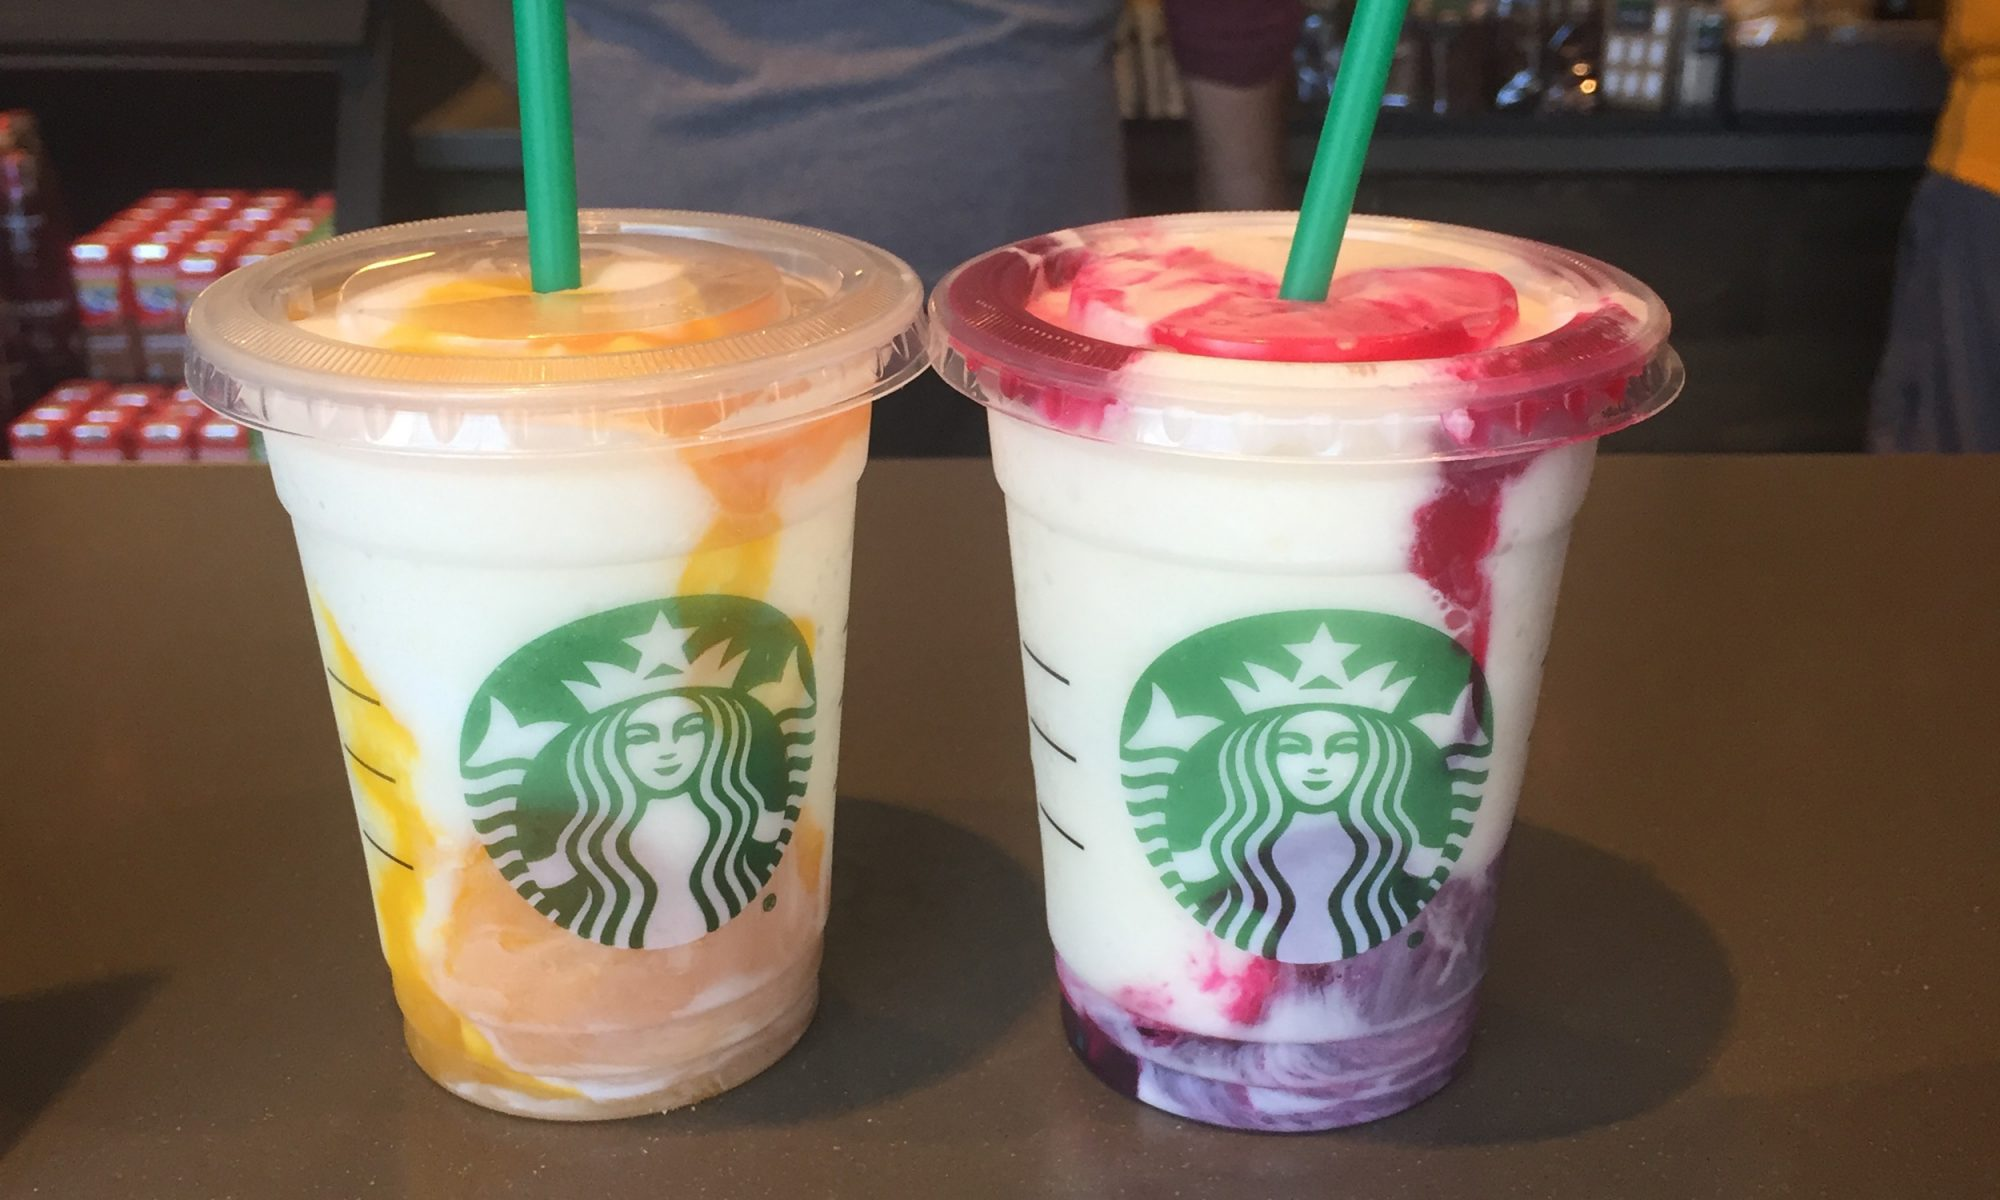 EC: Starbucks' New Mango Pineapple and Berry Prickly Pear Frappuccinos, Reviewed